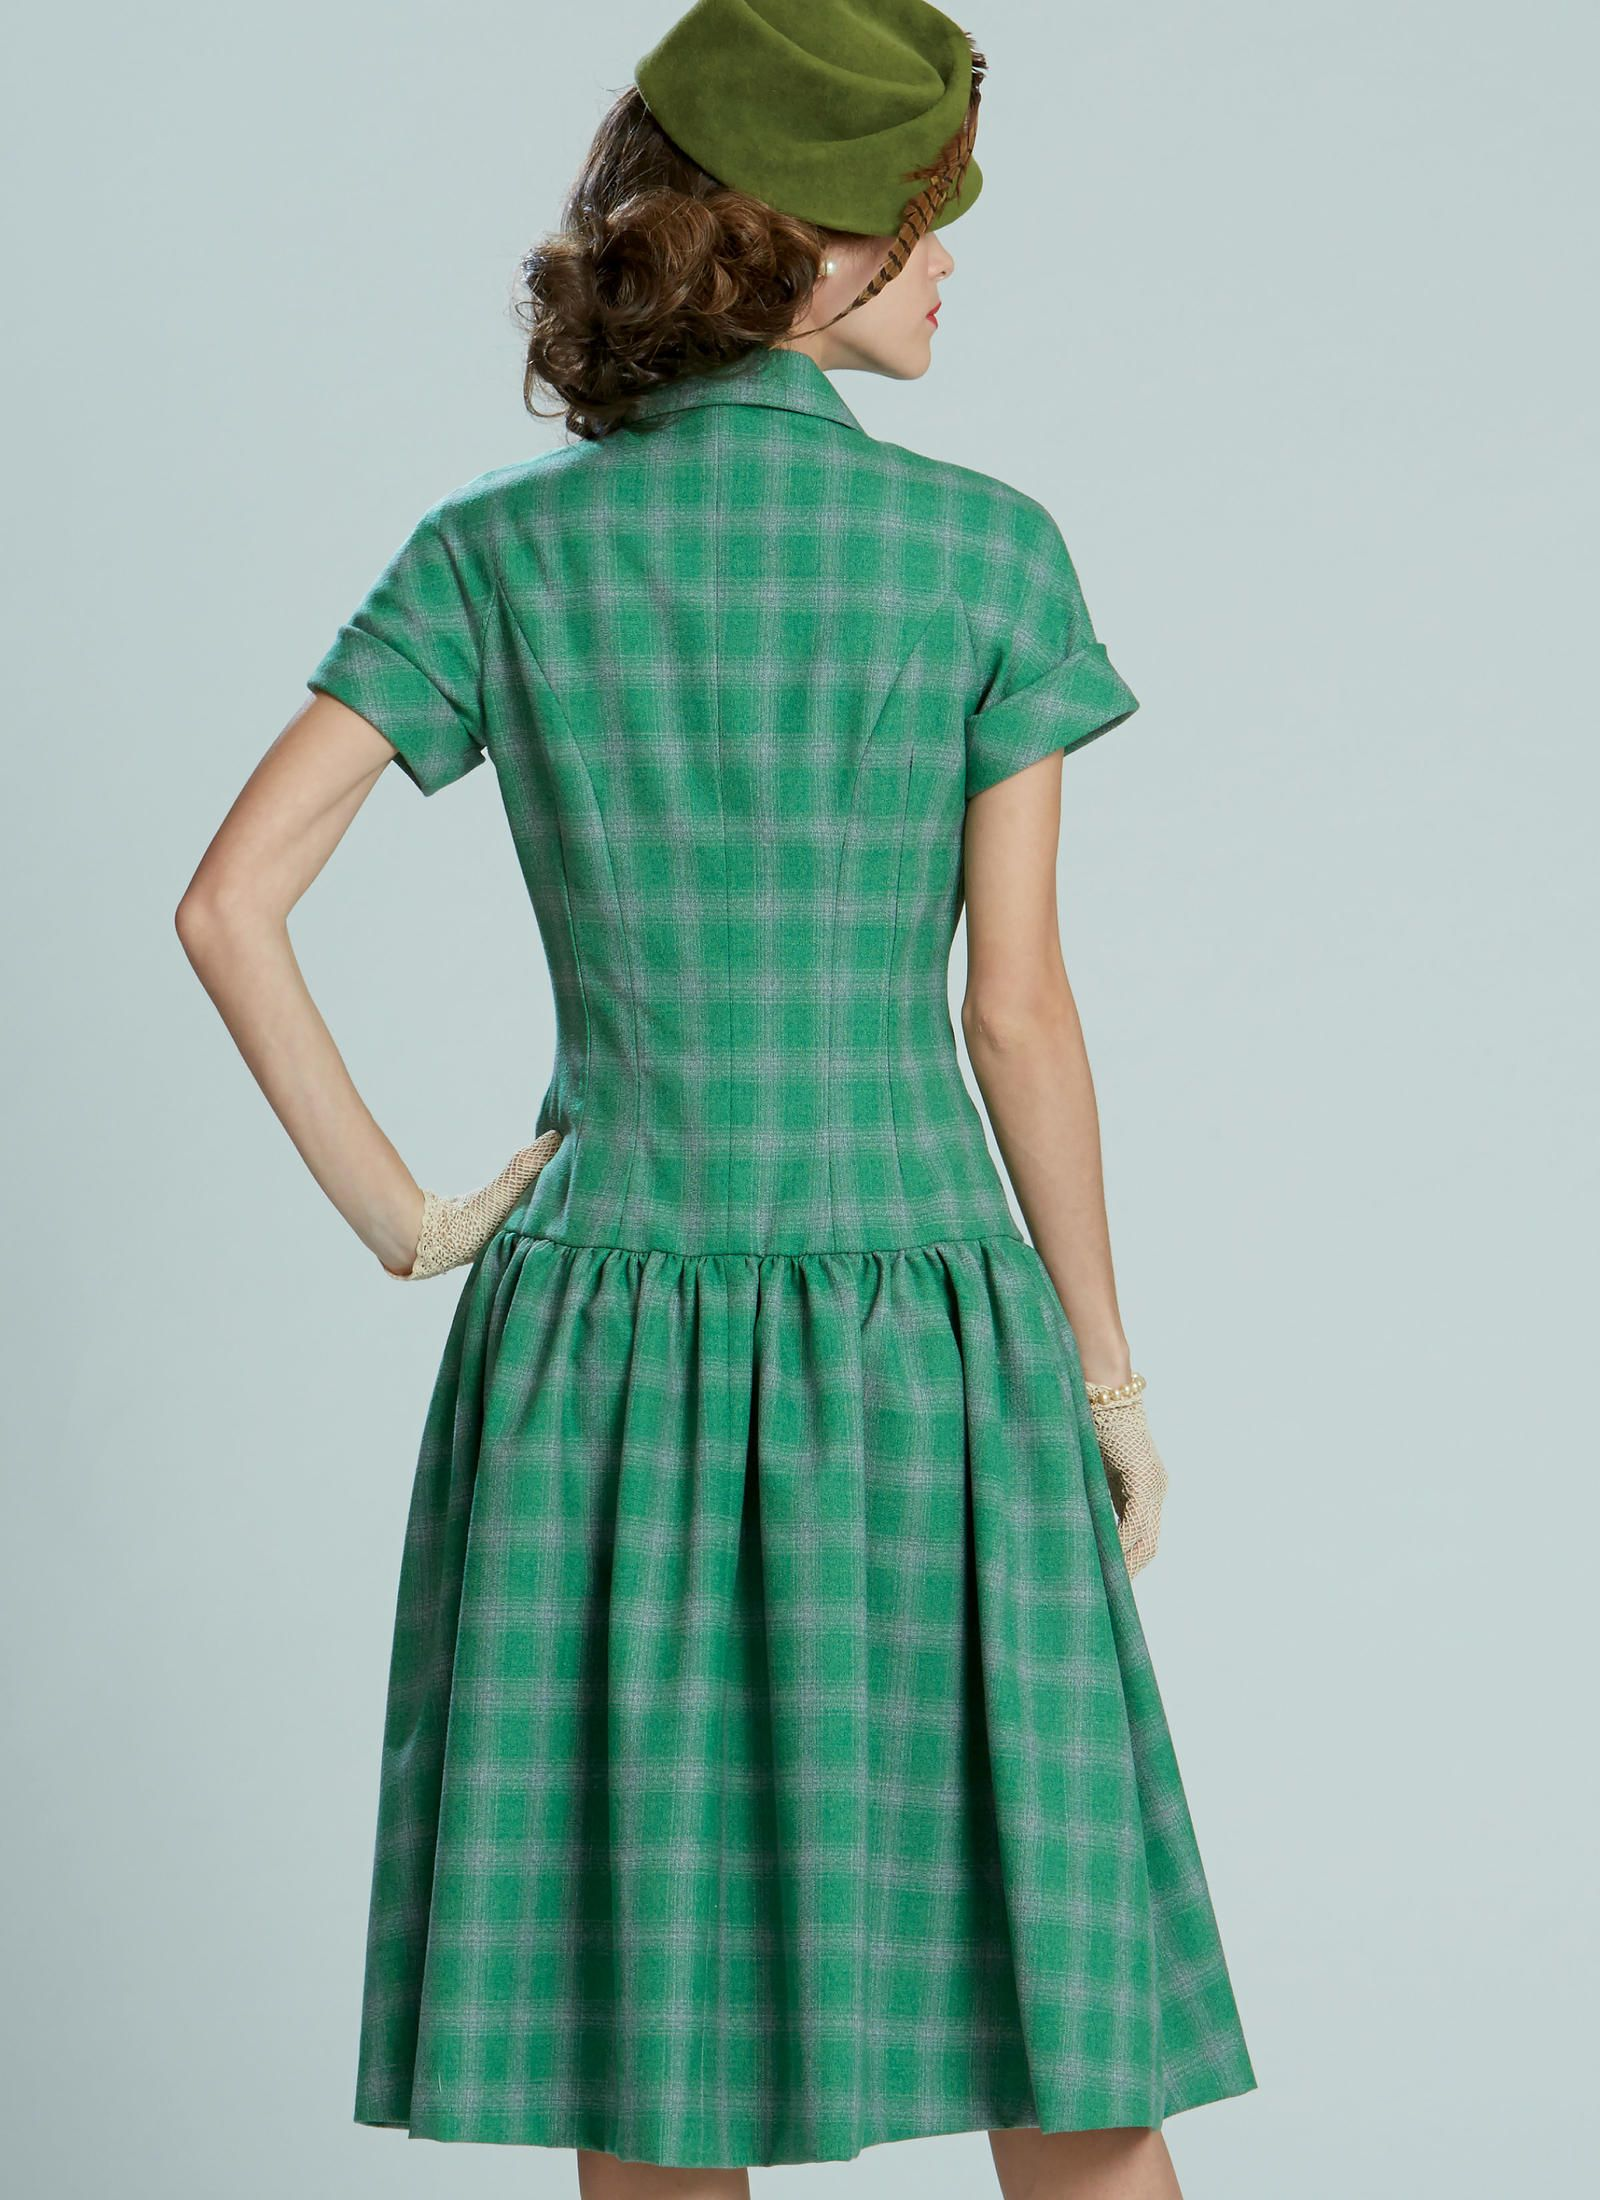 M7625 mccalls patterns fit and flare dress sewing